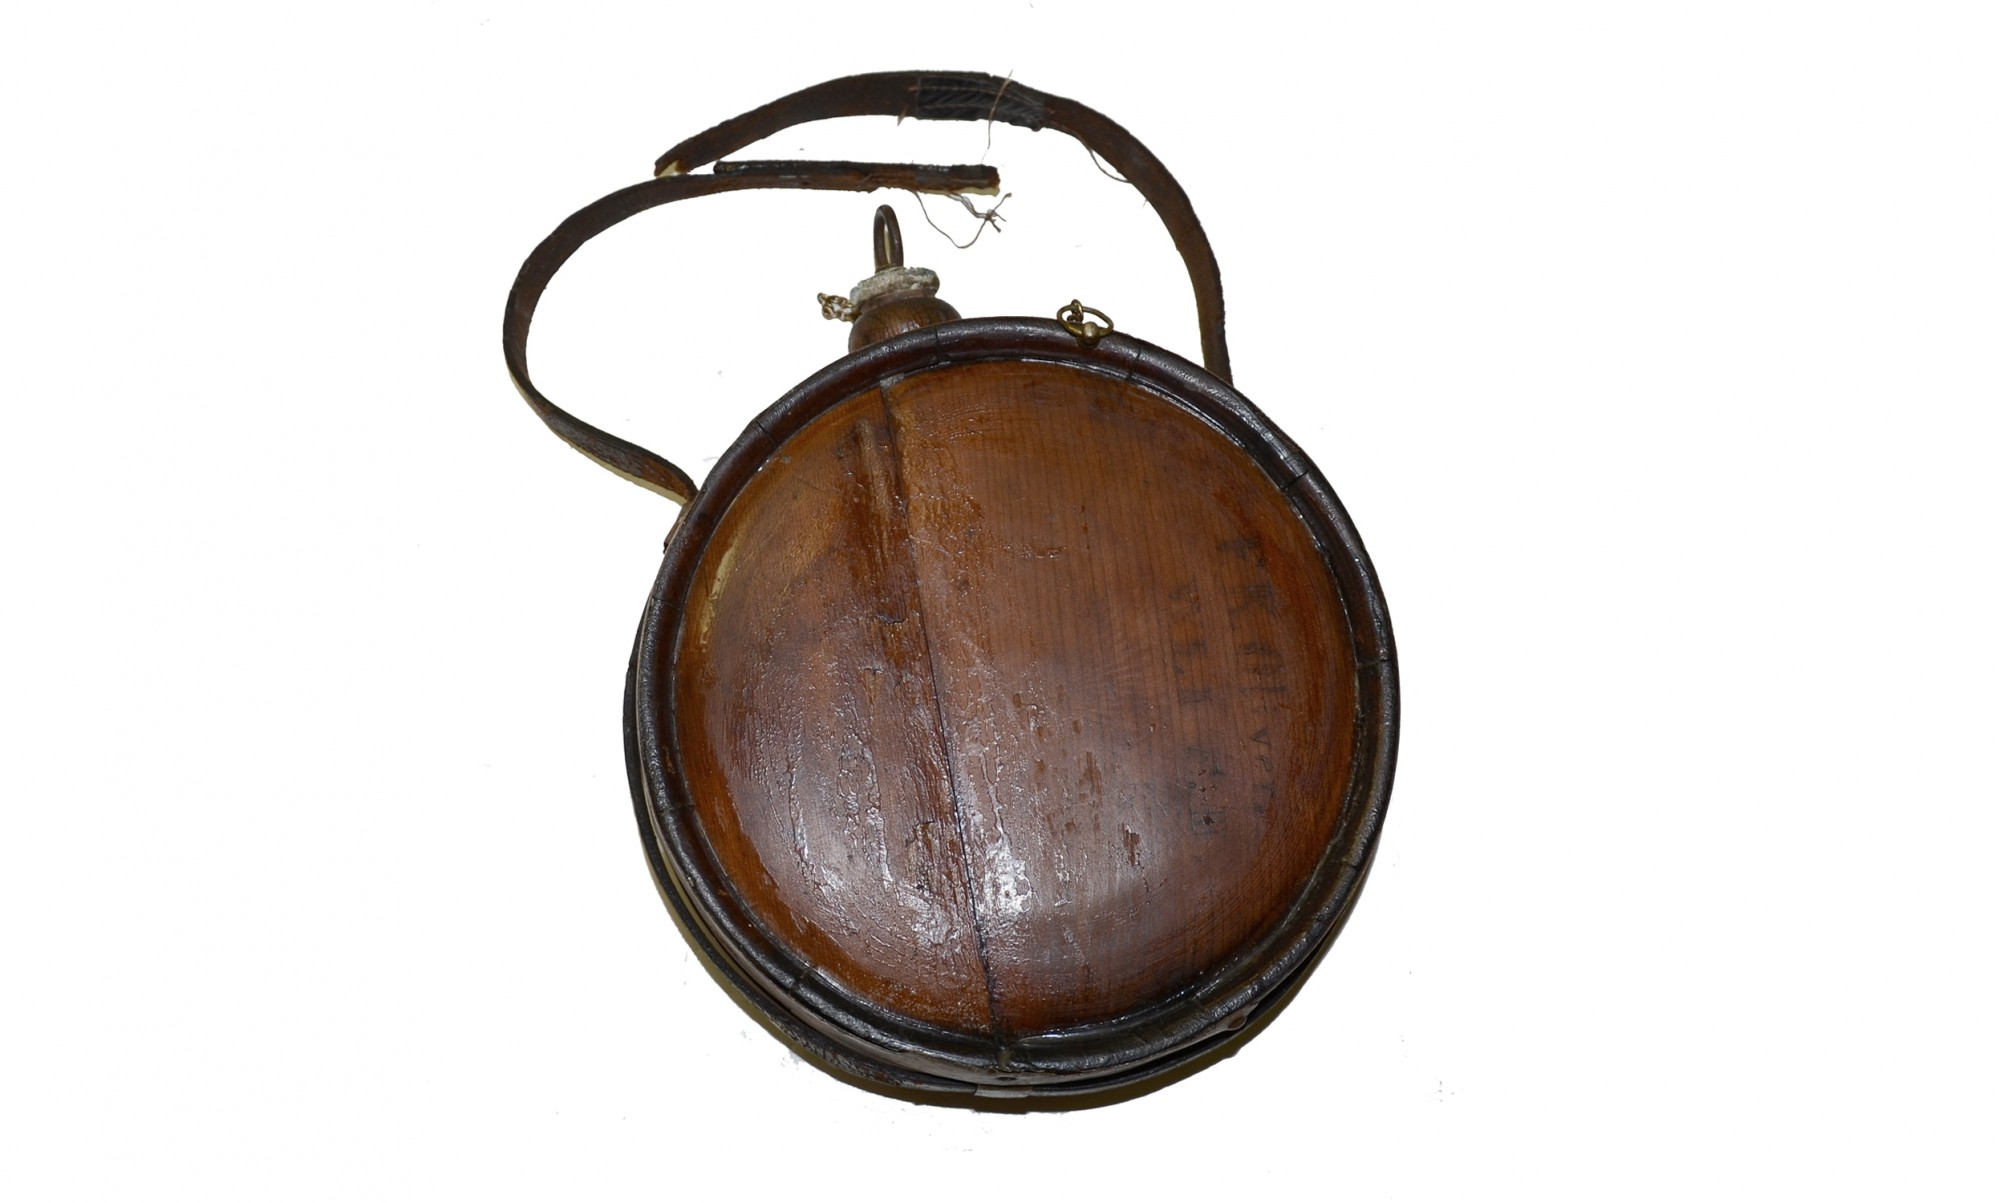 WOOD DRUM CANTEEN IDENTIFIED TO 25TH SOUTH CAROLINA SOLDIER